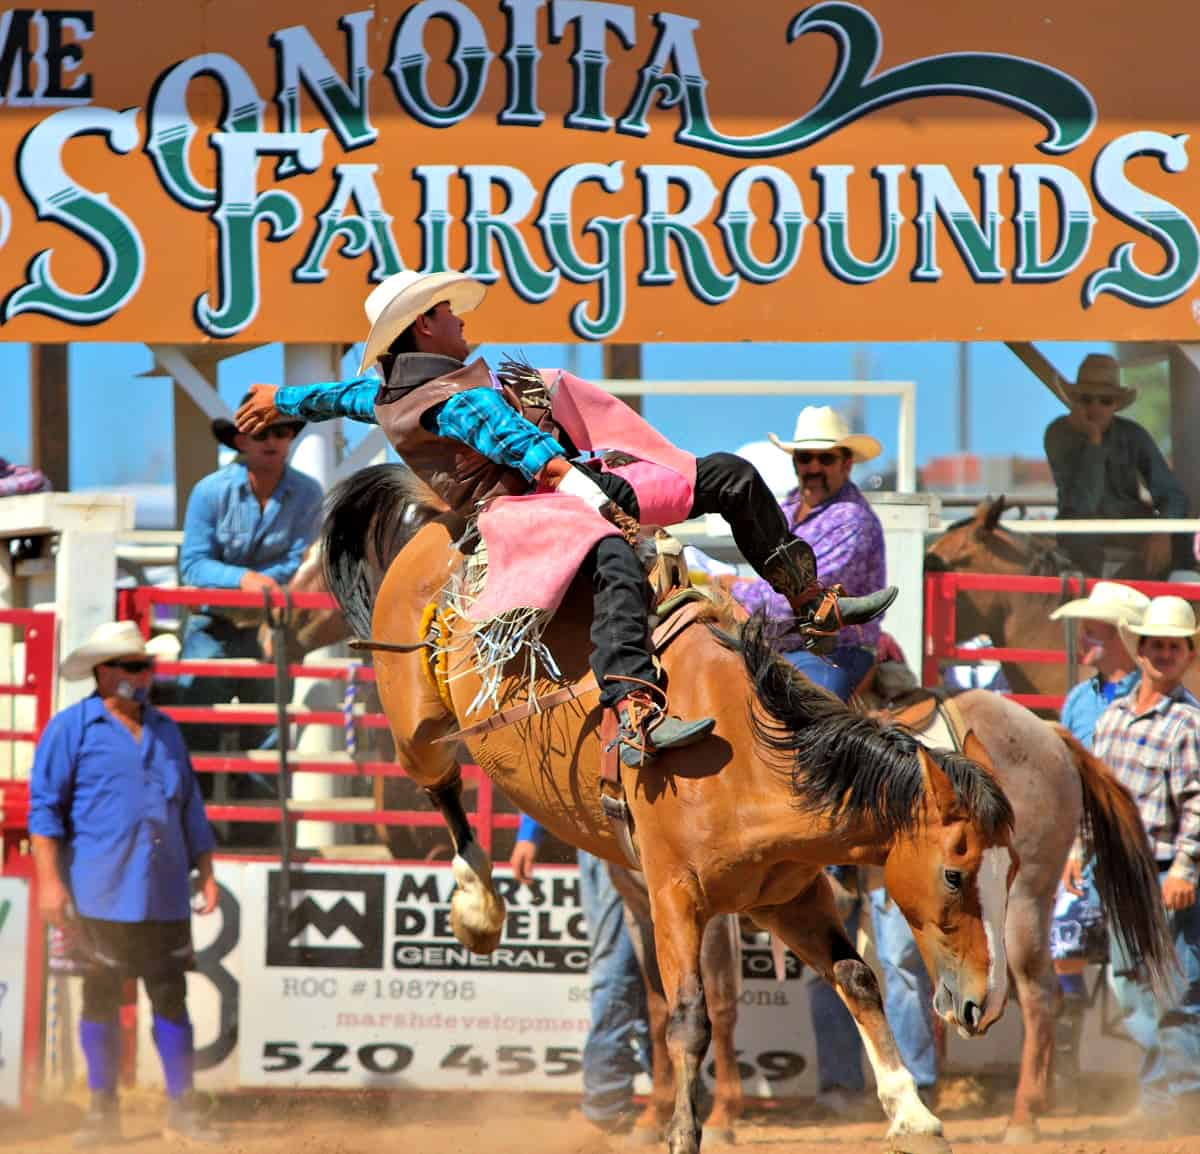 Cowboy on bucking horse at Sonoita Rodeo